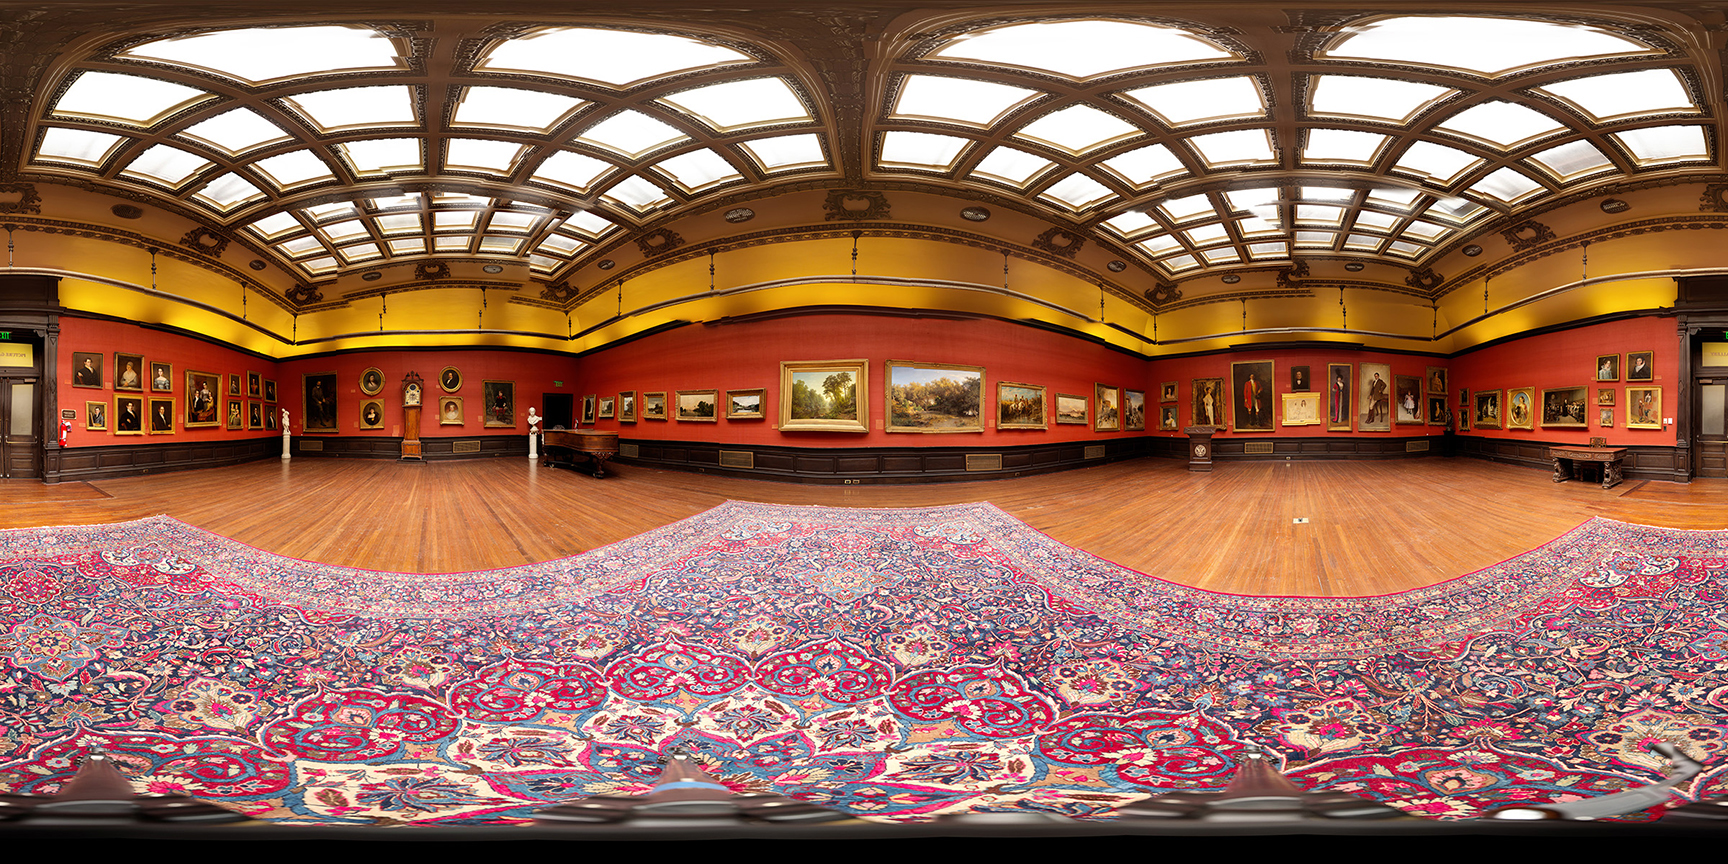 3D panorama, A.J.Drexel Picture Gallery. (re-creation), Main Building, Drexel University. Photographers: Nick Jushchyshyn and Sarah Kenderdine.